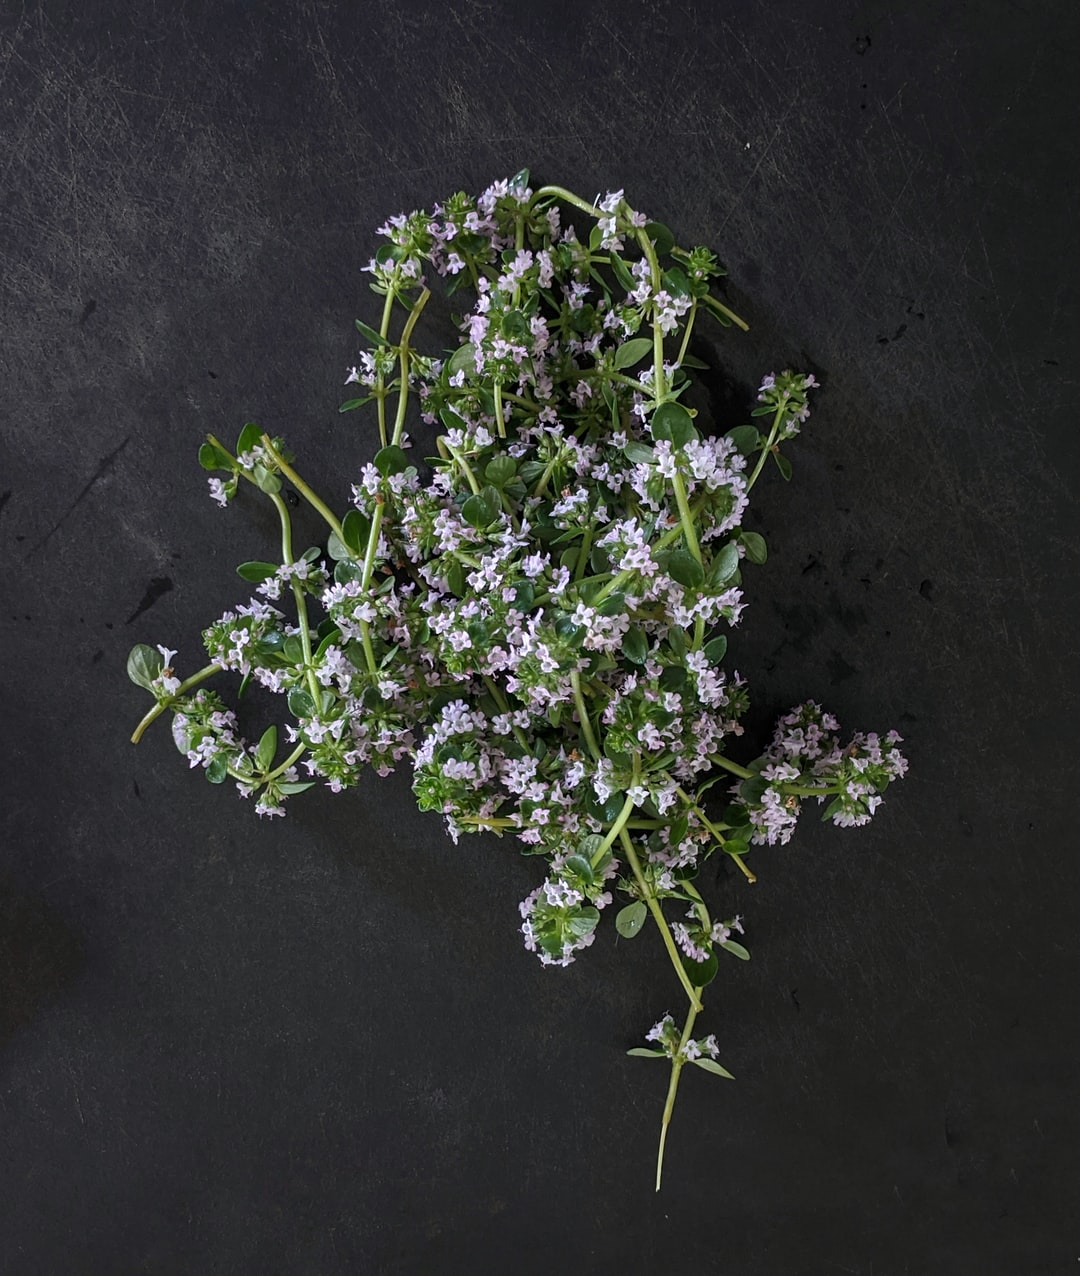 Thyme in flowers on cutting board.